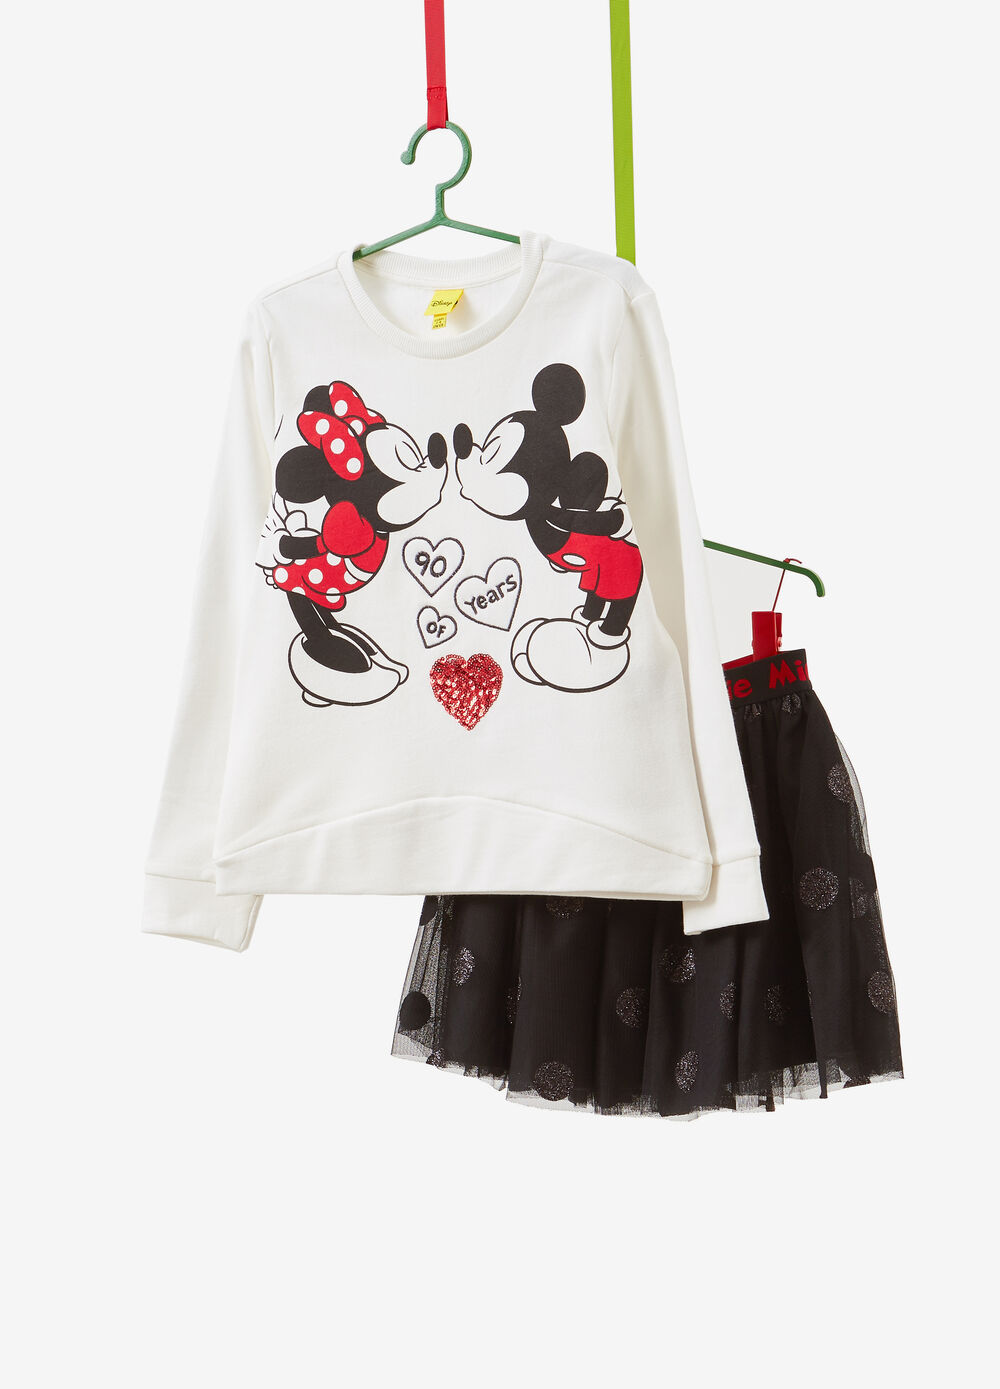 Minnie Mouse cotton T-shirt and skirt outfit